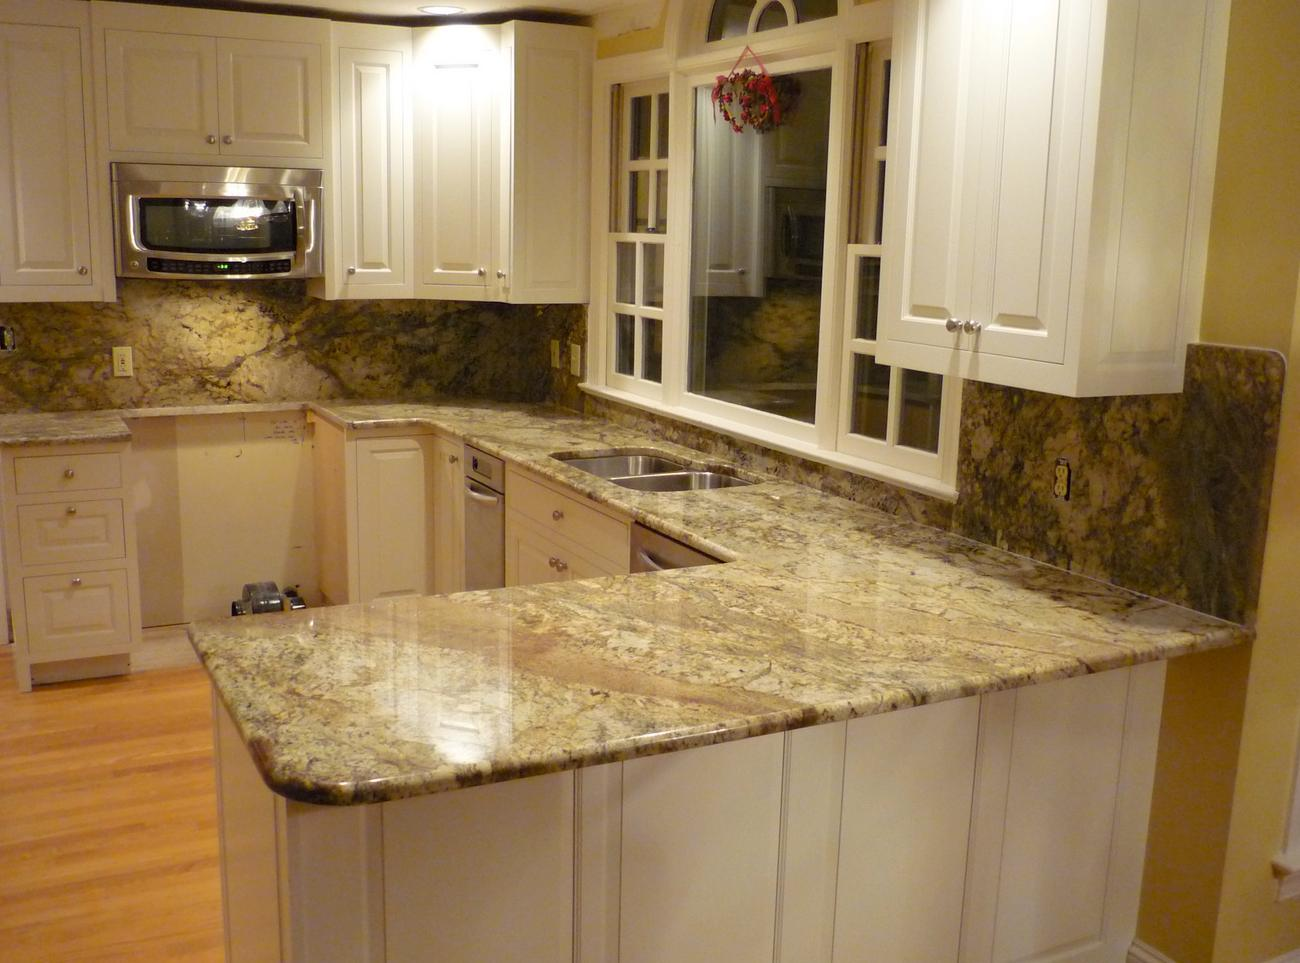 kitchen cabinets and countertops cost kitchen cabinets and countertops cost 20024